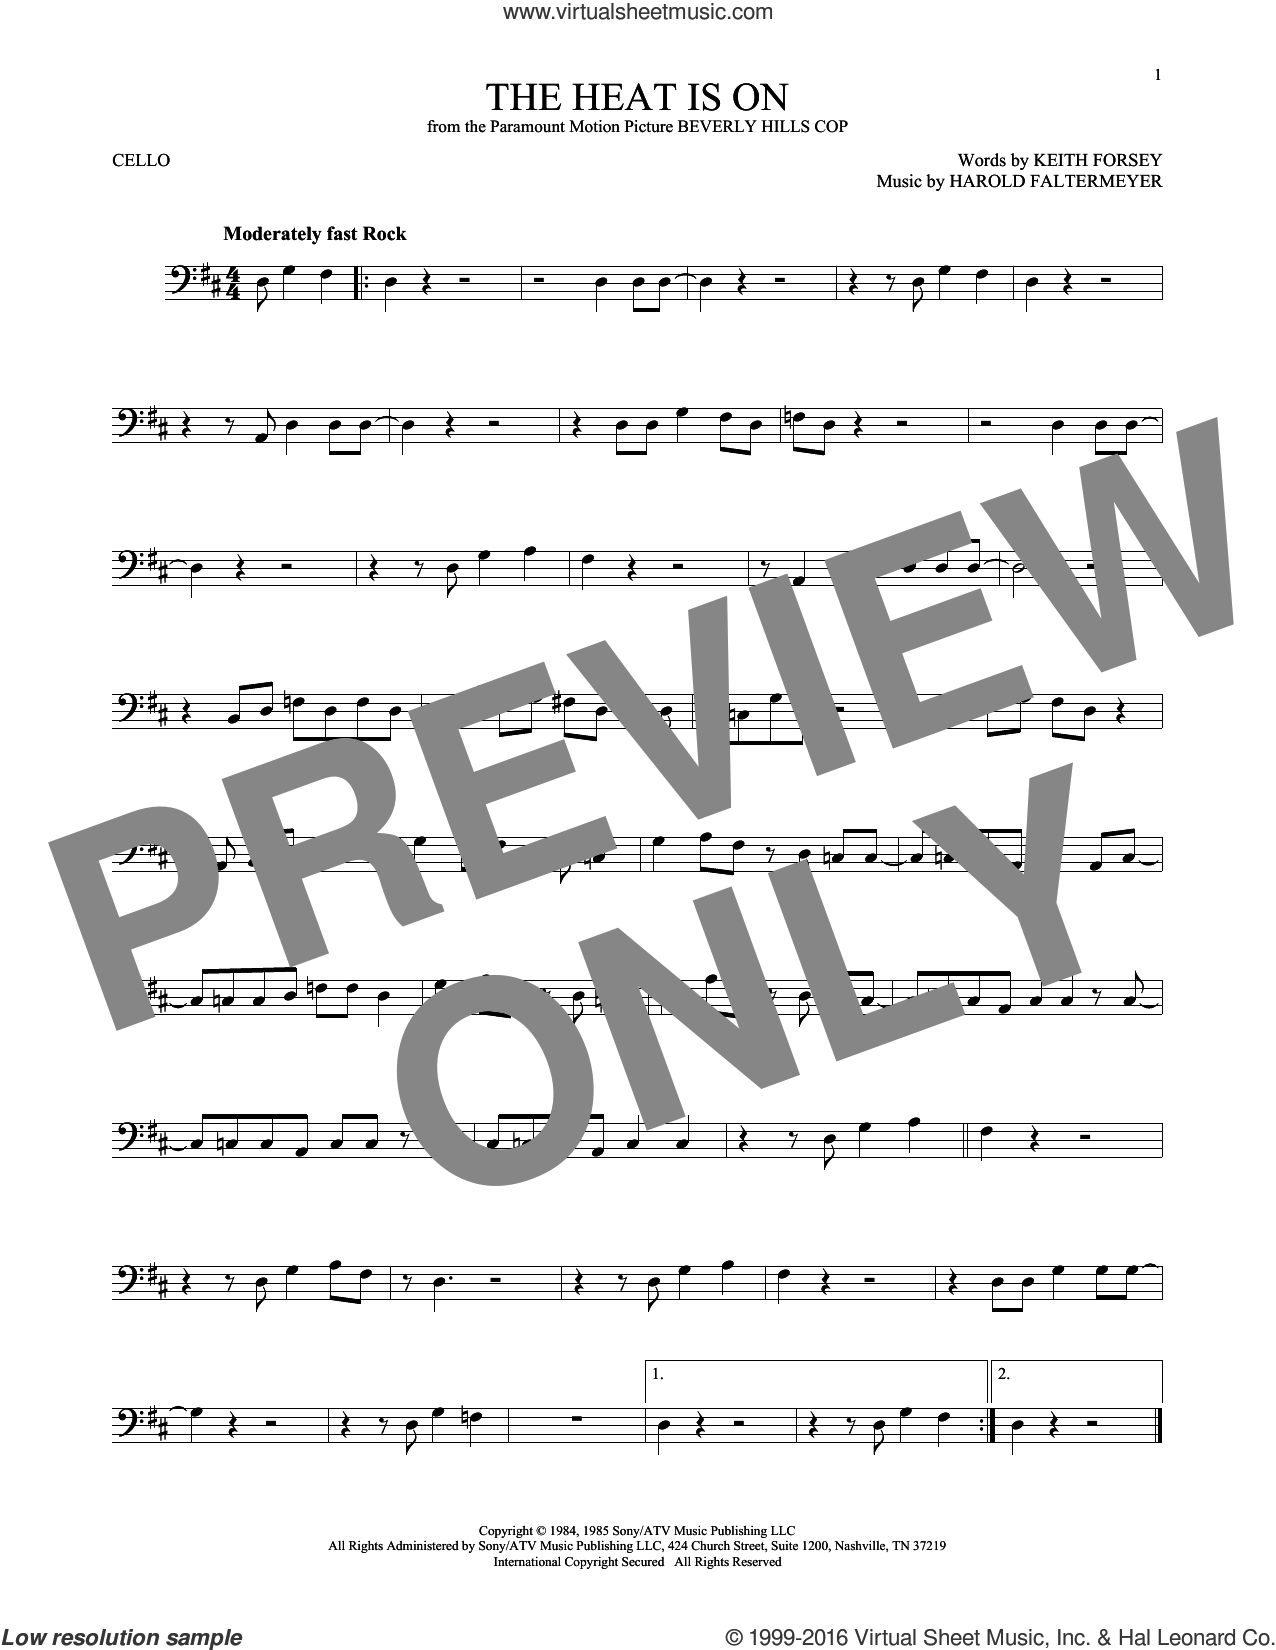 The Heat Is On sheet music for cello solo by Glenn Frey, Harold Faltermeyer and Keith Forsey, intermediate cello. Score Image Preview.